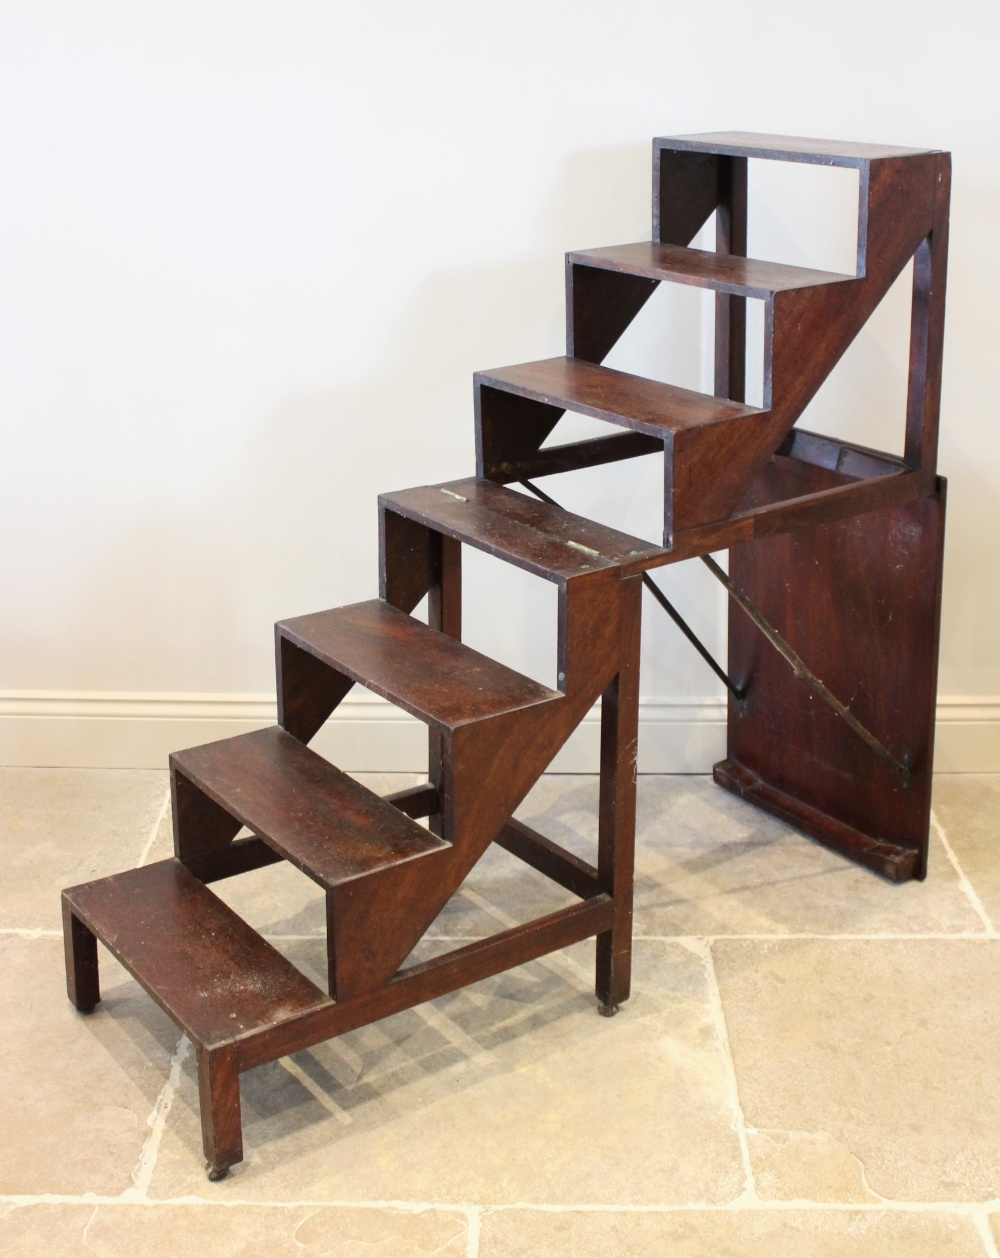 A 19th century mahogany metamorphic table/library steps, the rectangular moulded top on plain legs - Image 2 of 3